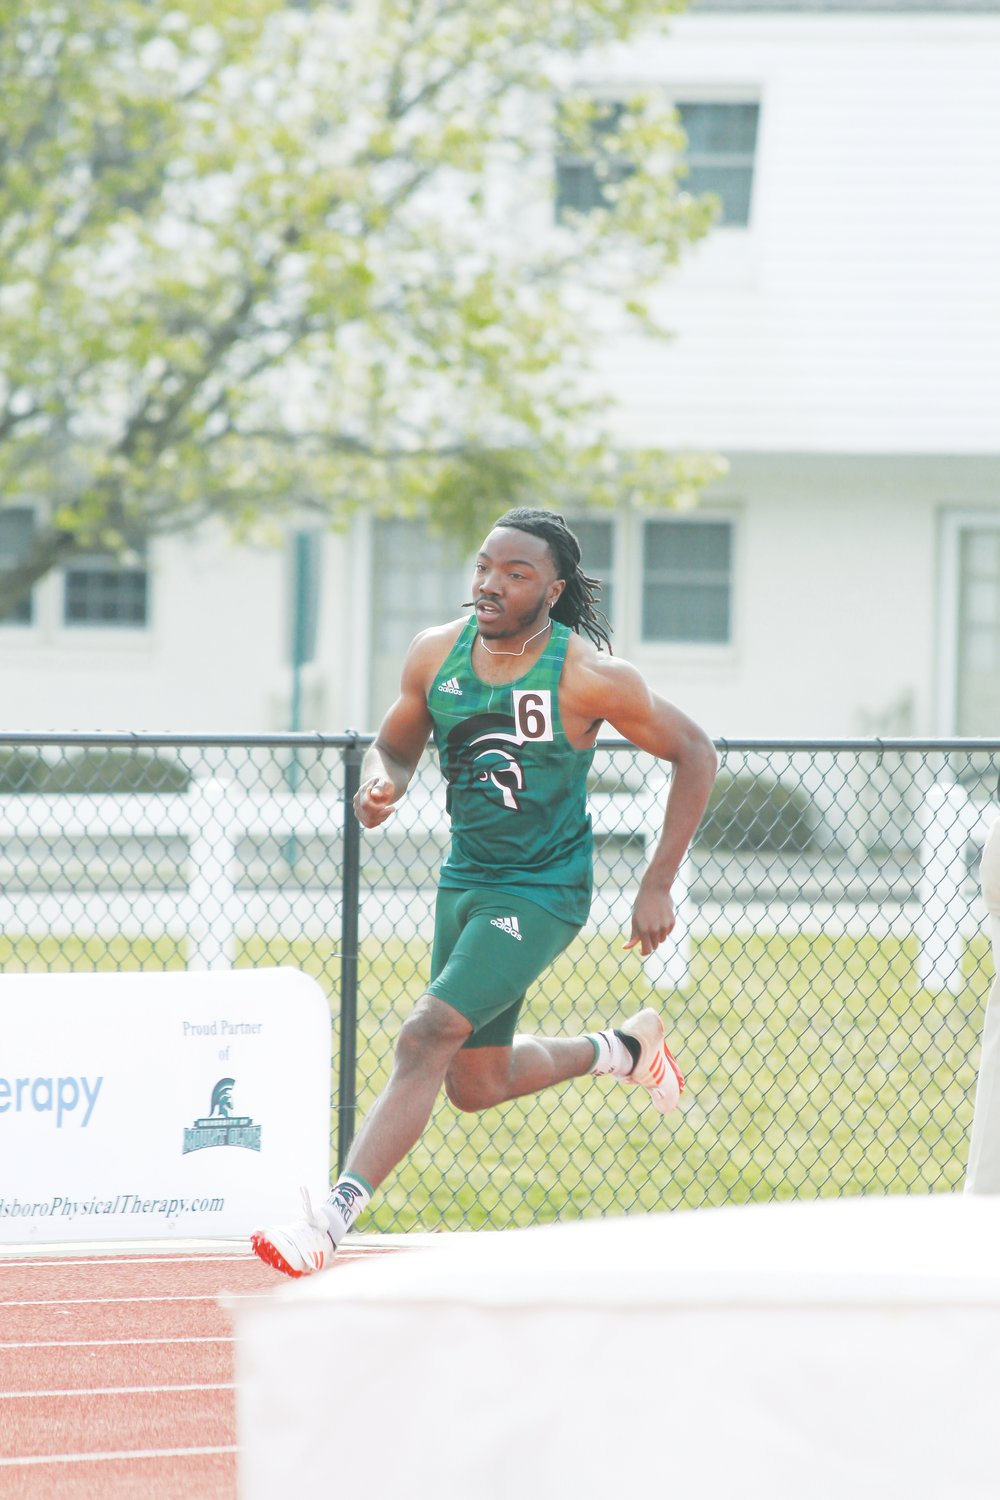 Montrell Perry competes in the 100-meter dash at an outdoor meet last season.